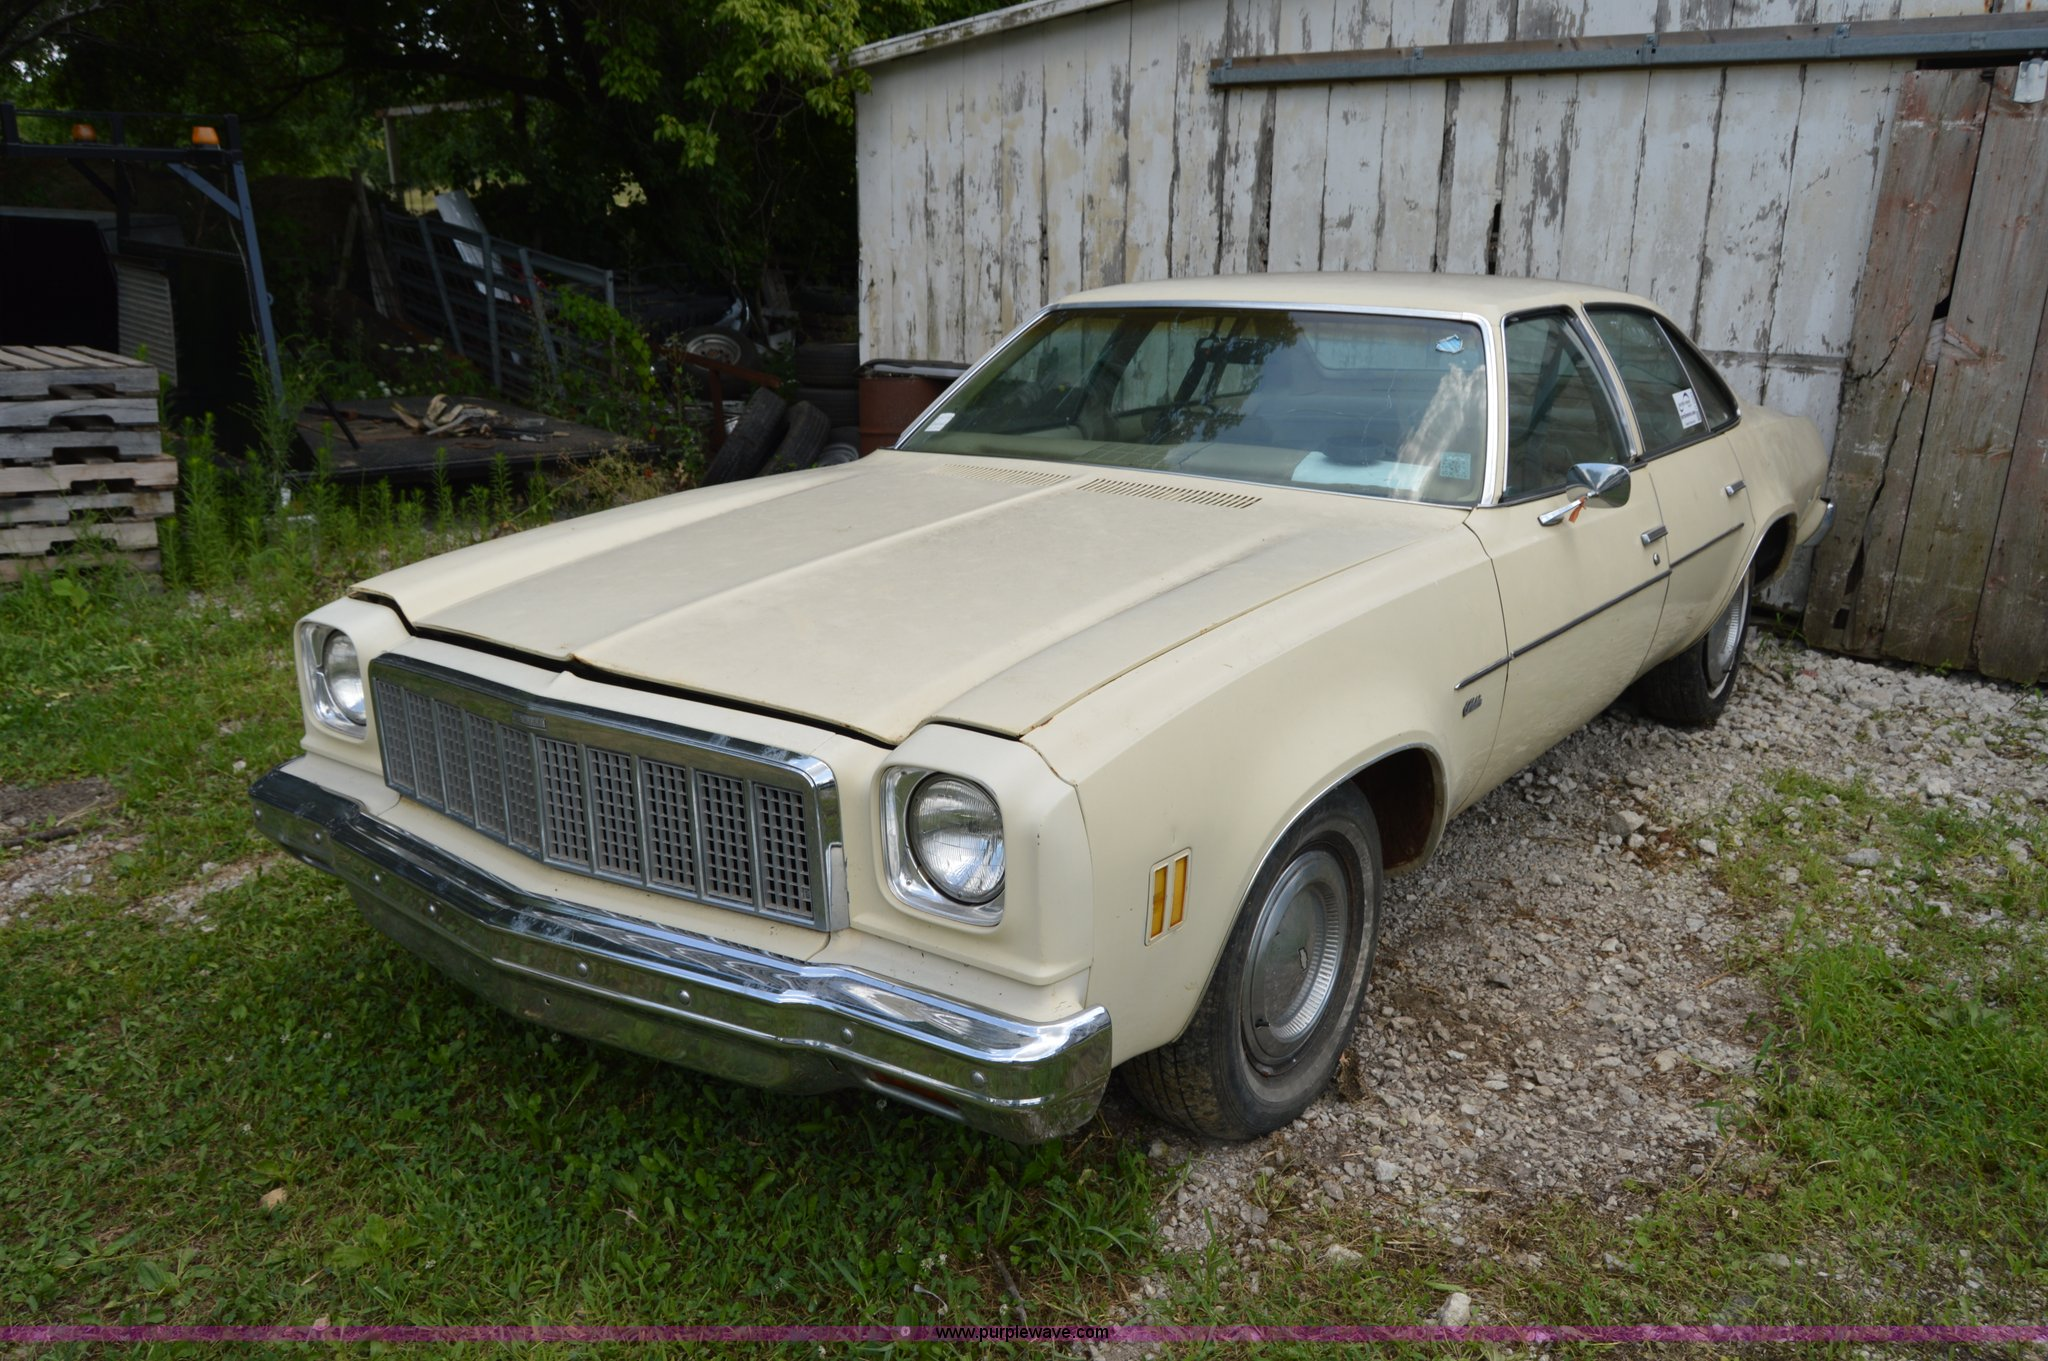 on daily located reserve this super malibu chevrolet wagon alpharetta met it ebay bidding turismo here with buy in not now sport ga for style chevelle sale find